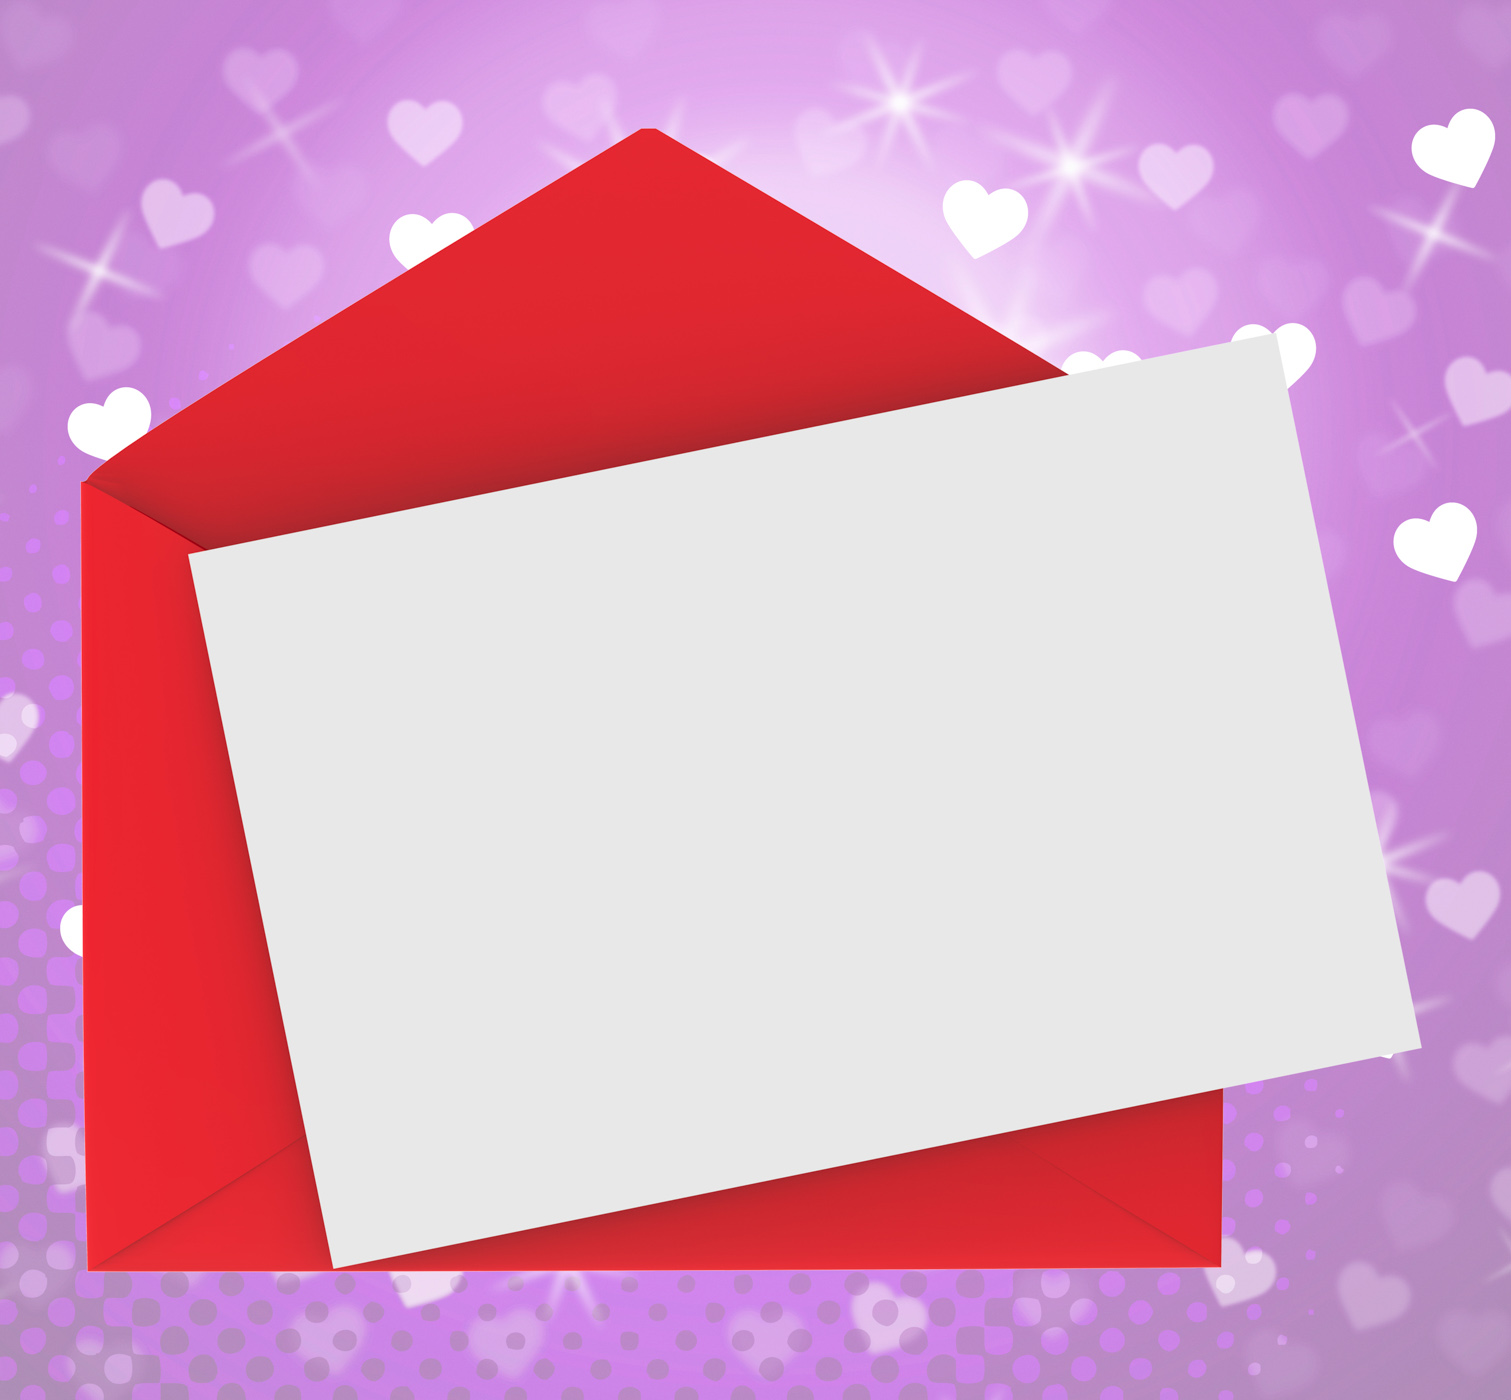 Red Envelope With Note card Shows Romance And Love, Card, Message, Red, Privacy, HQ Photo